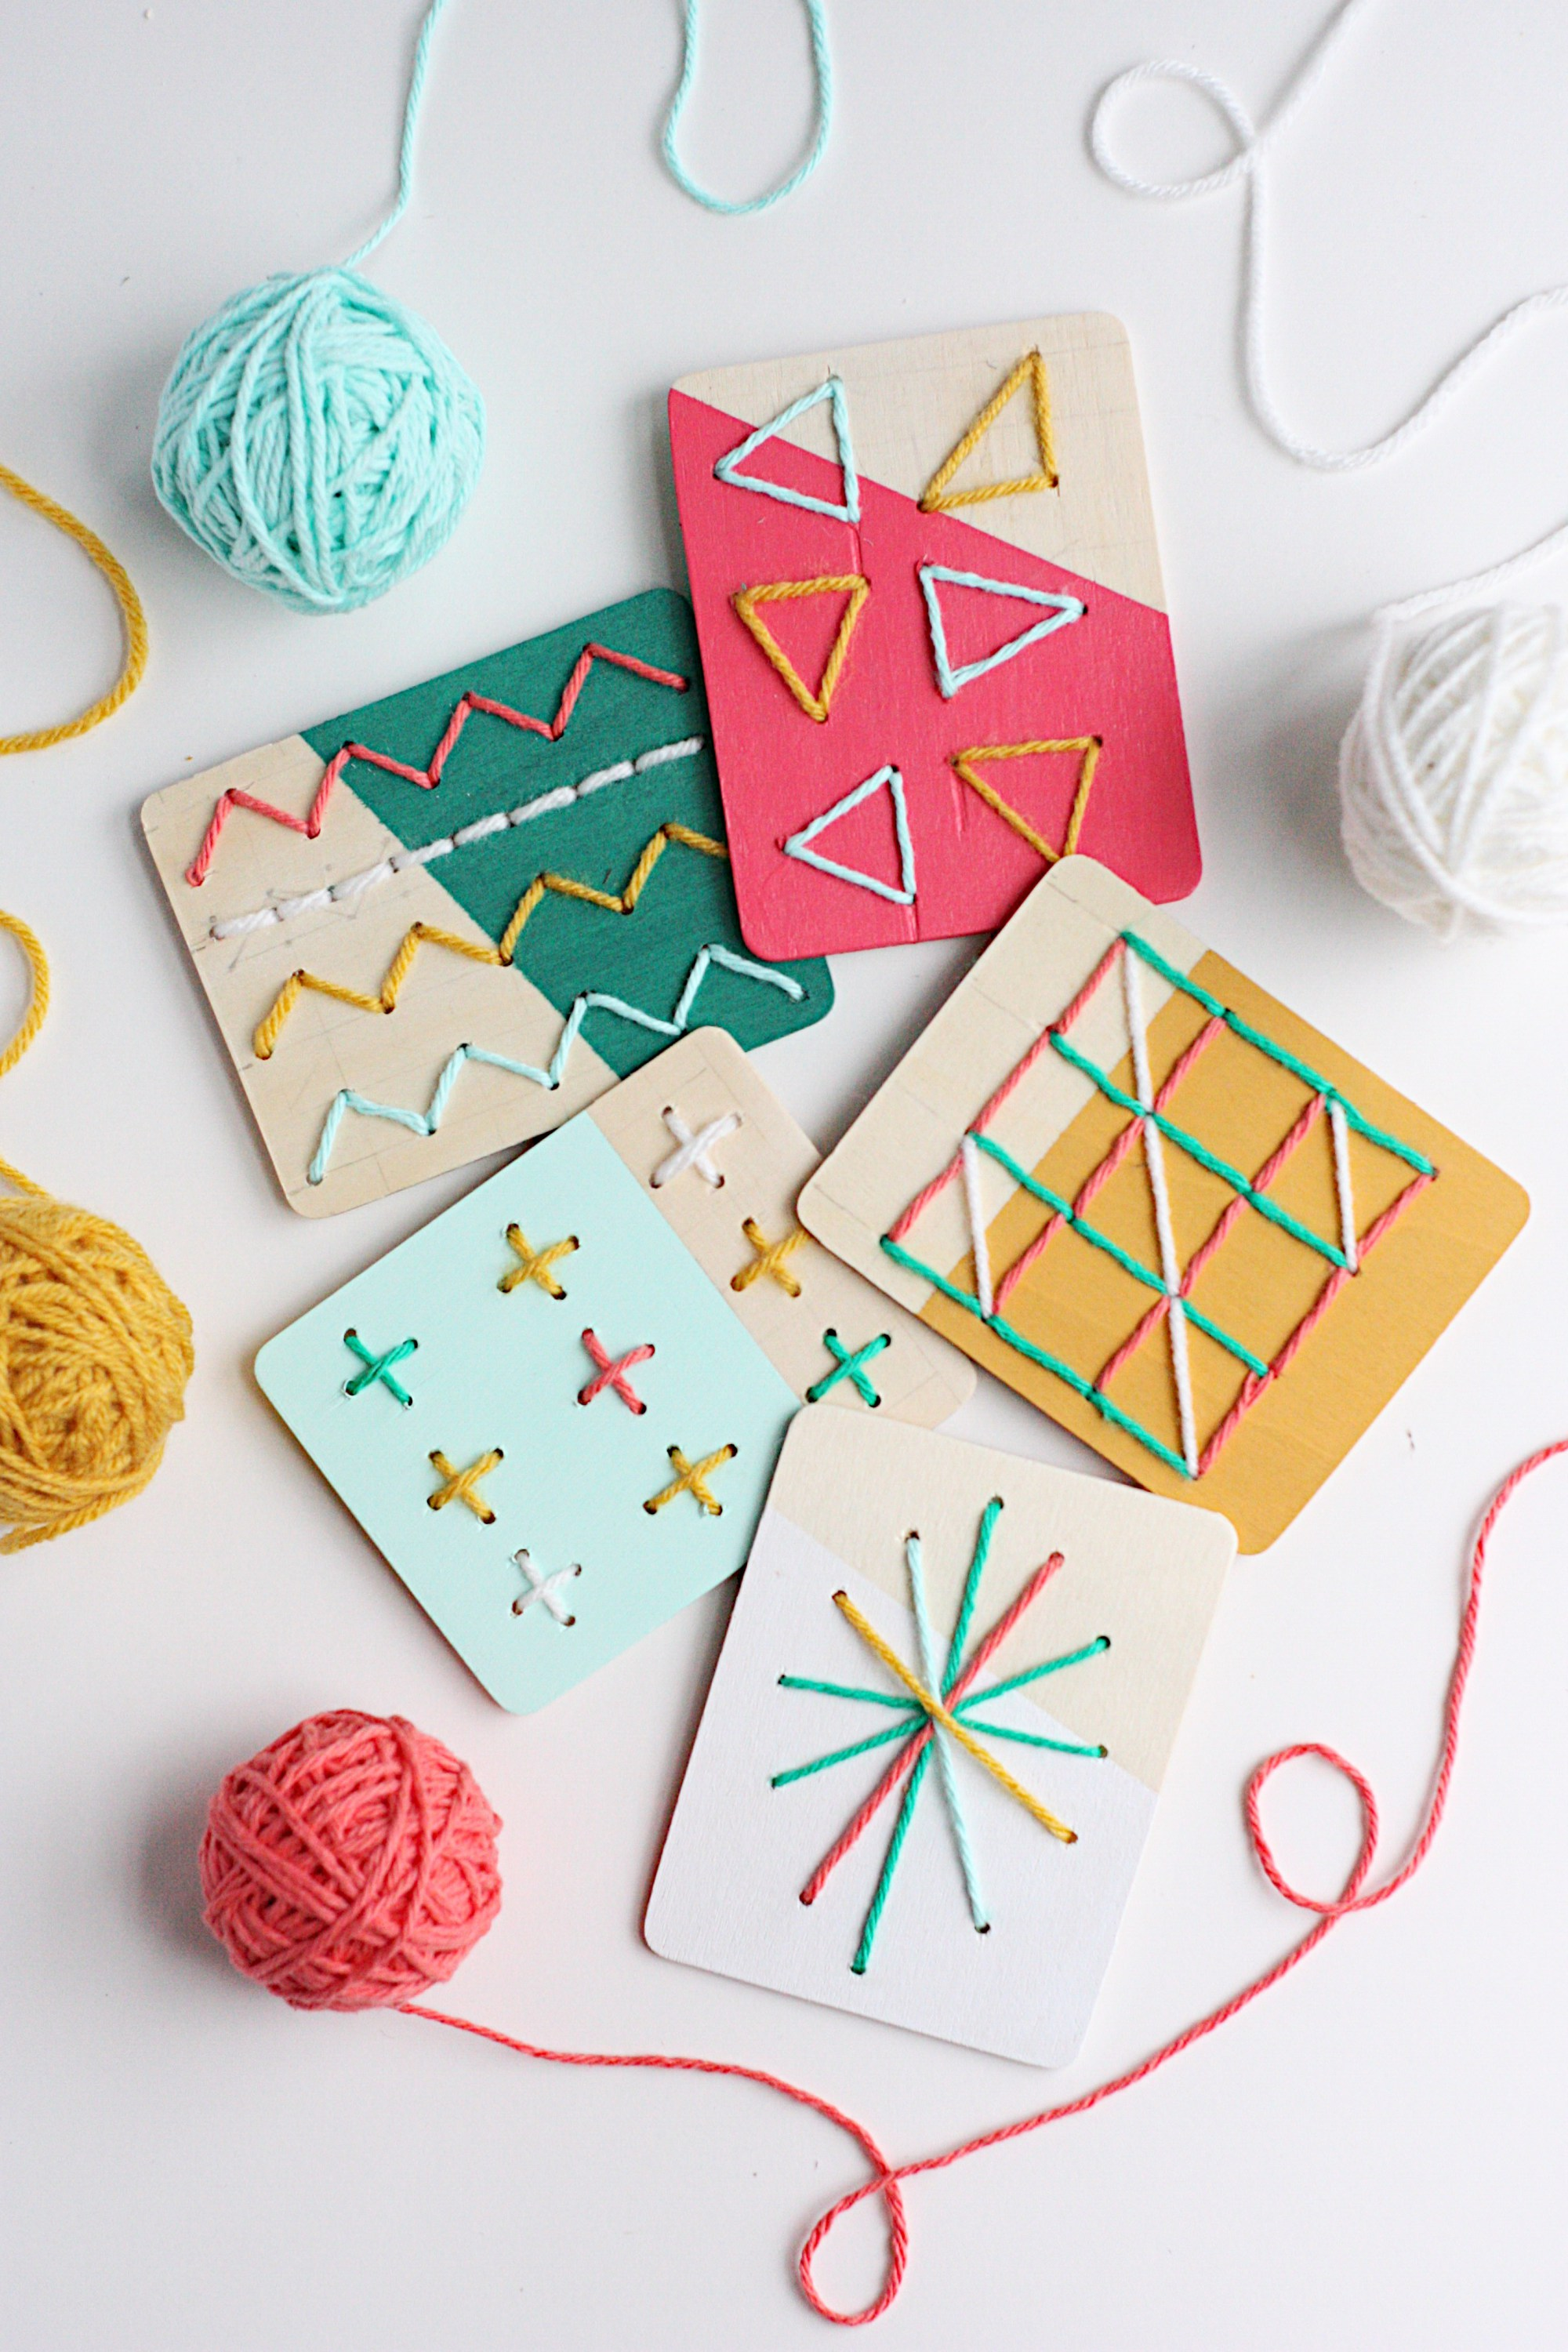 11 DIY Yarn Crafts That Will Amaze Your Kids - Shelterness